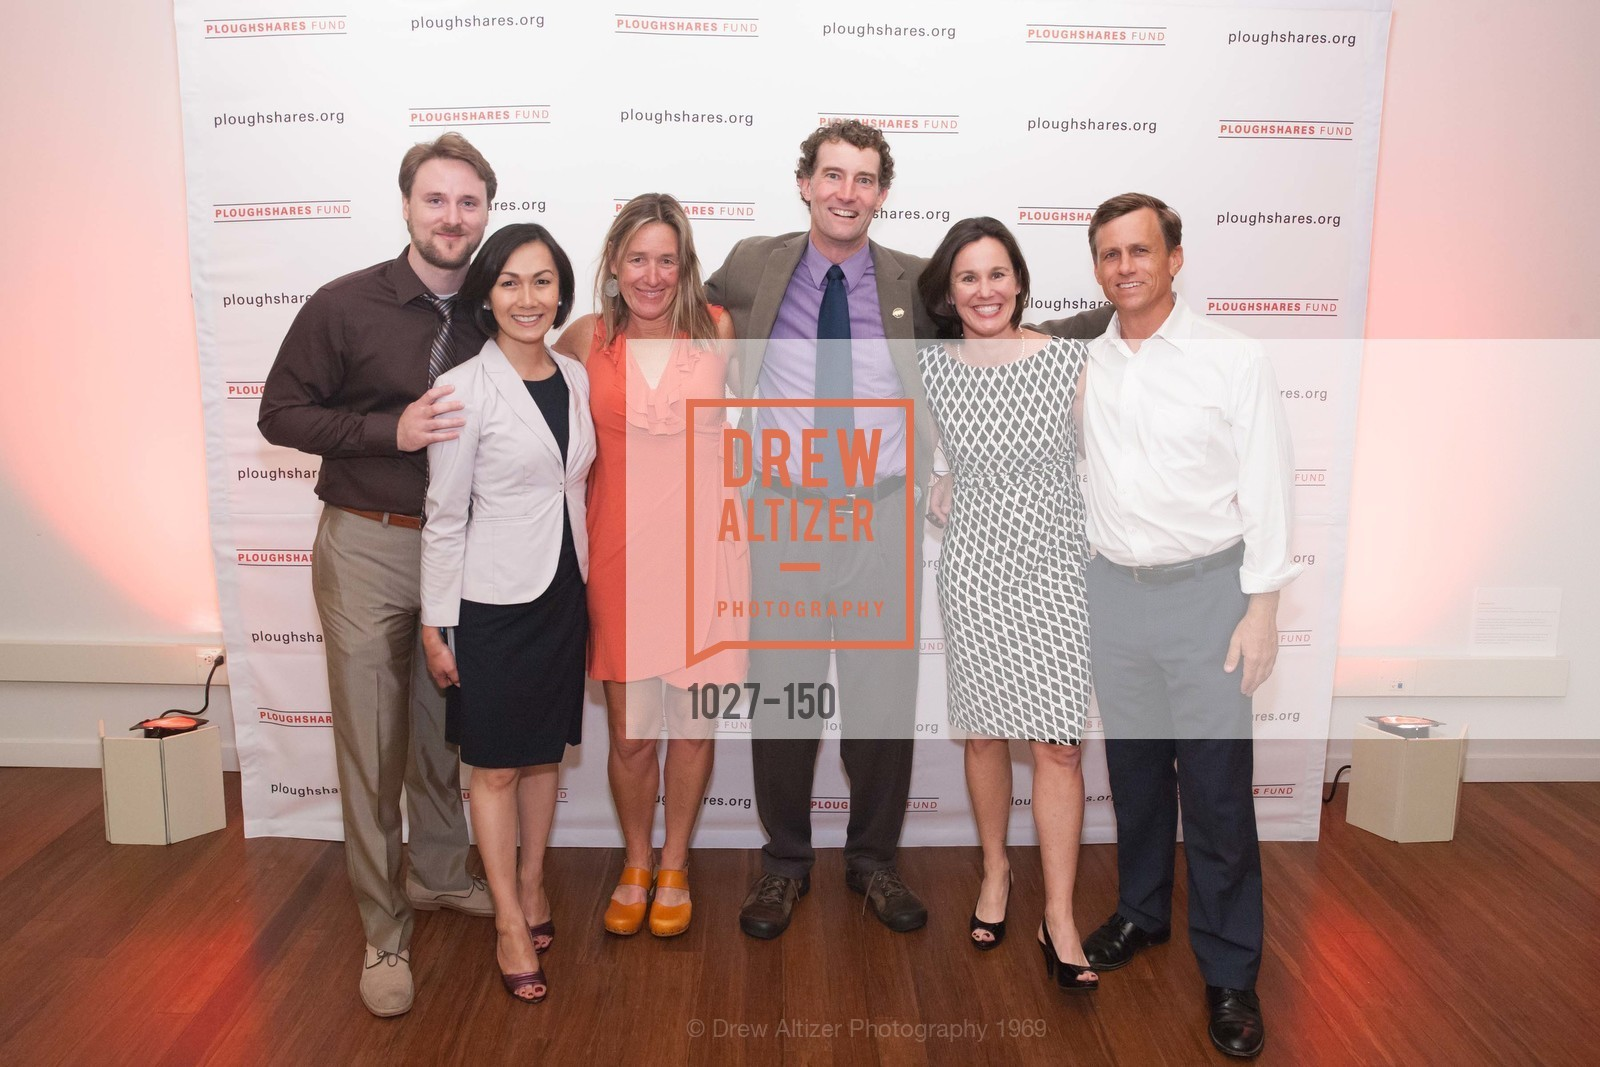 Max Breakwell, Isobelle Sugiyama, Elise Holland, Paul Carroll, Elizabeth Rogers, Van Cornwell, Ploughshares Fund Presenting CHAIN REACTION 2015, The Open Square at Futures Without Violence. 100 Montgomery Street, June 7th, 2015,Drew Altizer, Drew Altizer Photography, full-service agency, private events, San Francisco photographer, photographer california